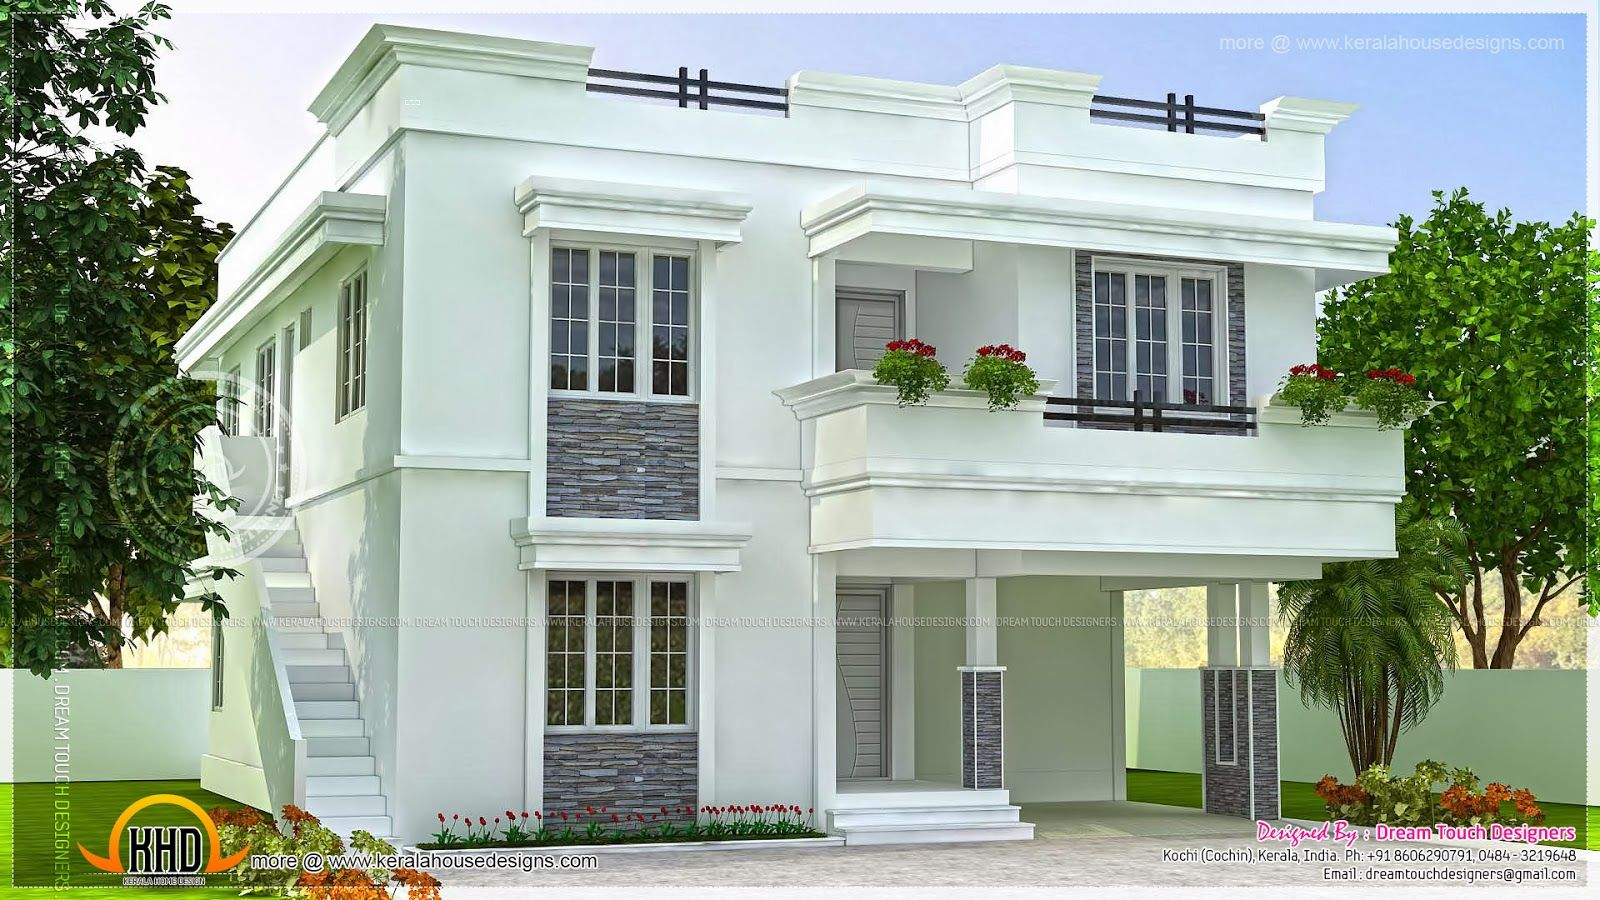 Modern beautiful home modern beautiful home design indian for Home design exterior ideas in india